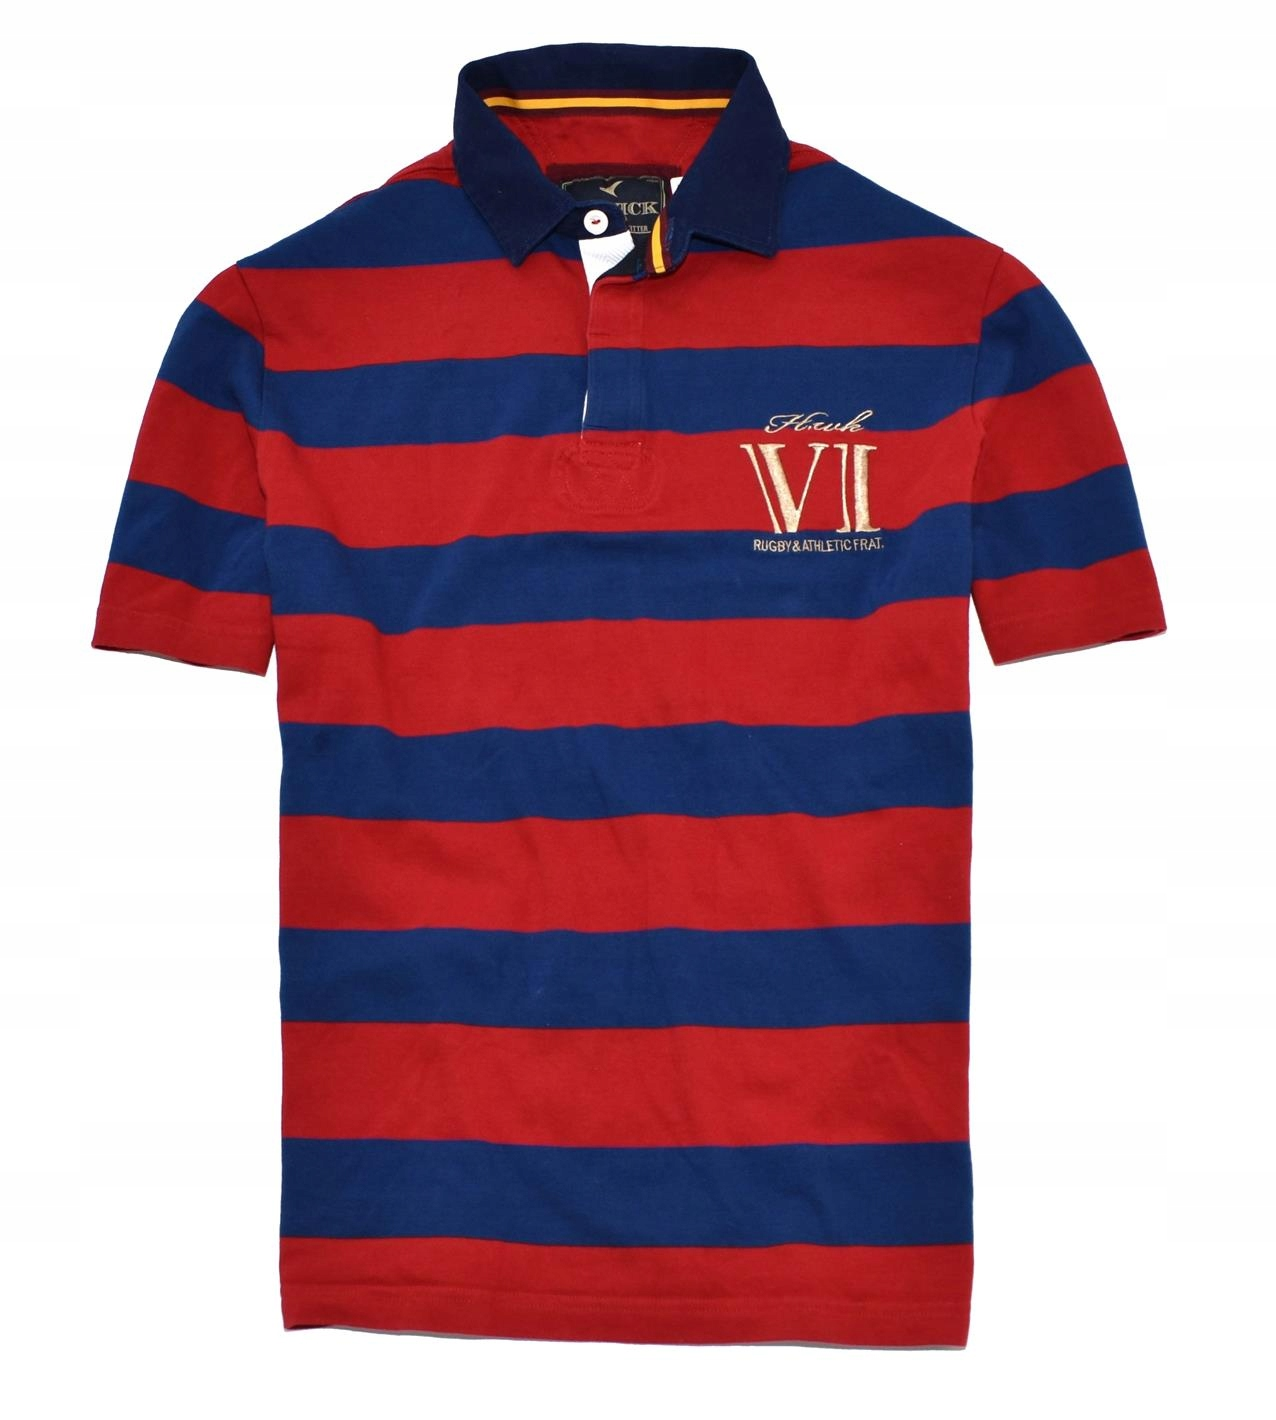 MM 104 HOWICK_ORYGINAL RUGBY ATHLETIC POLO_2XL